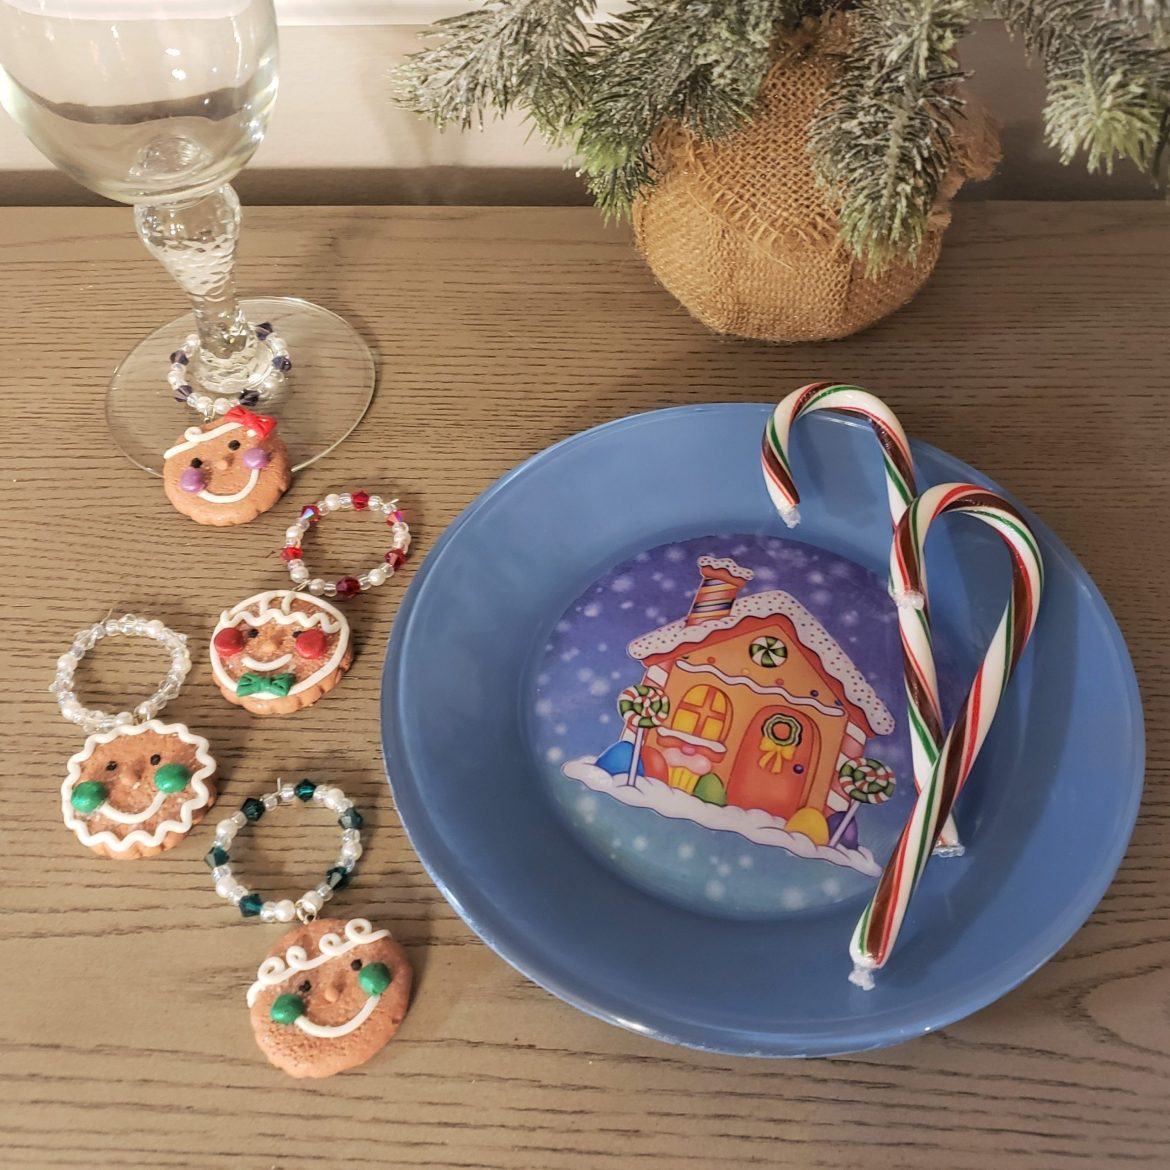 Gingerbread Serving Pieces ~ Wine Glass Charms & Dessert Plate